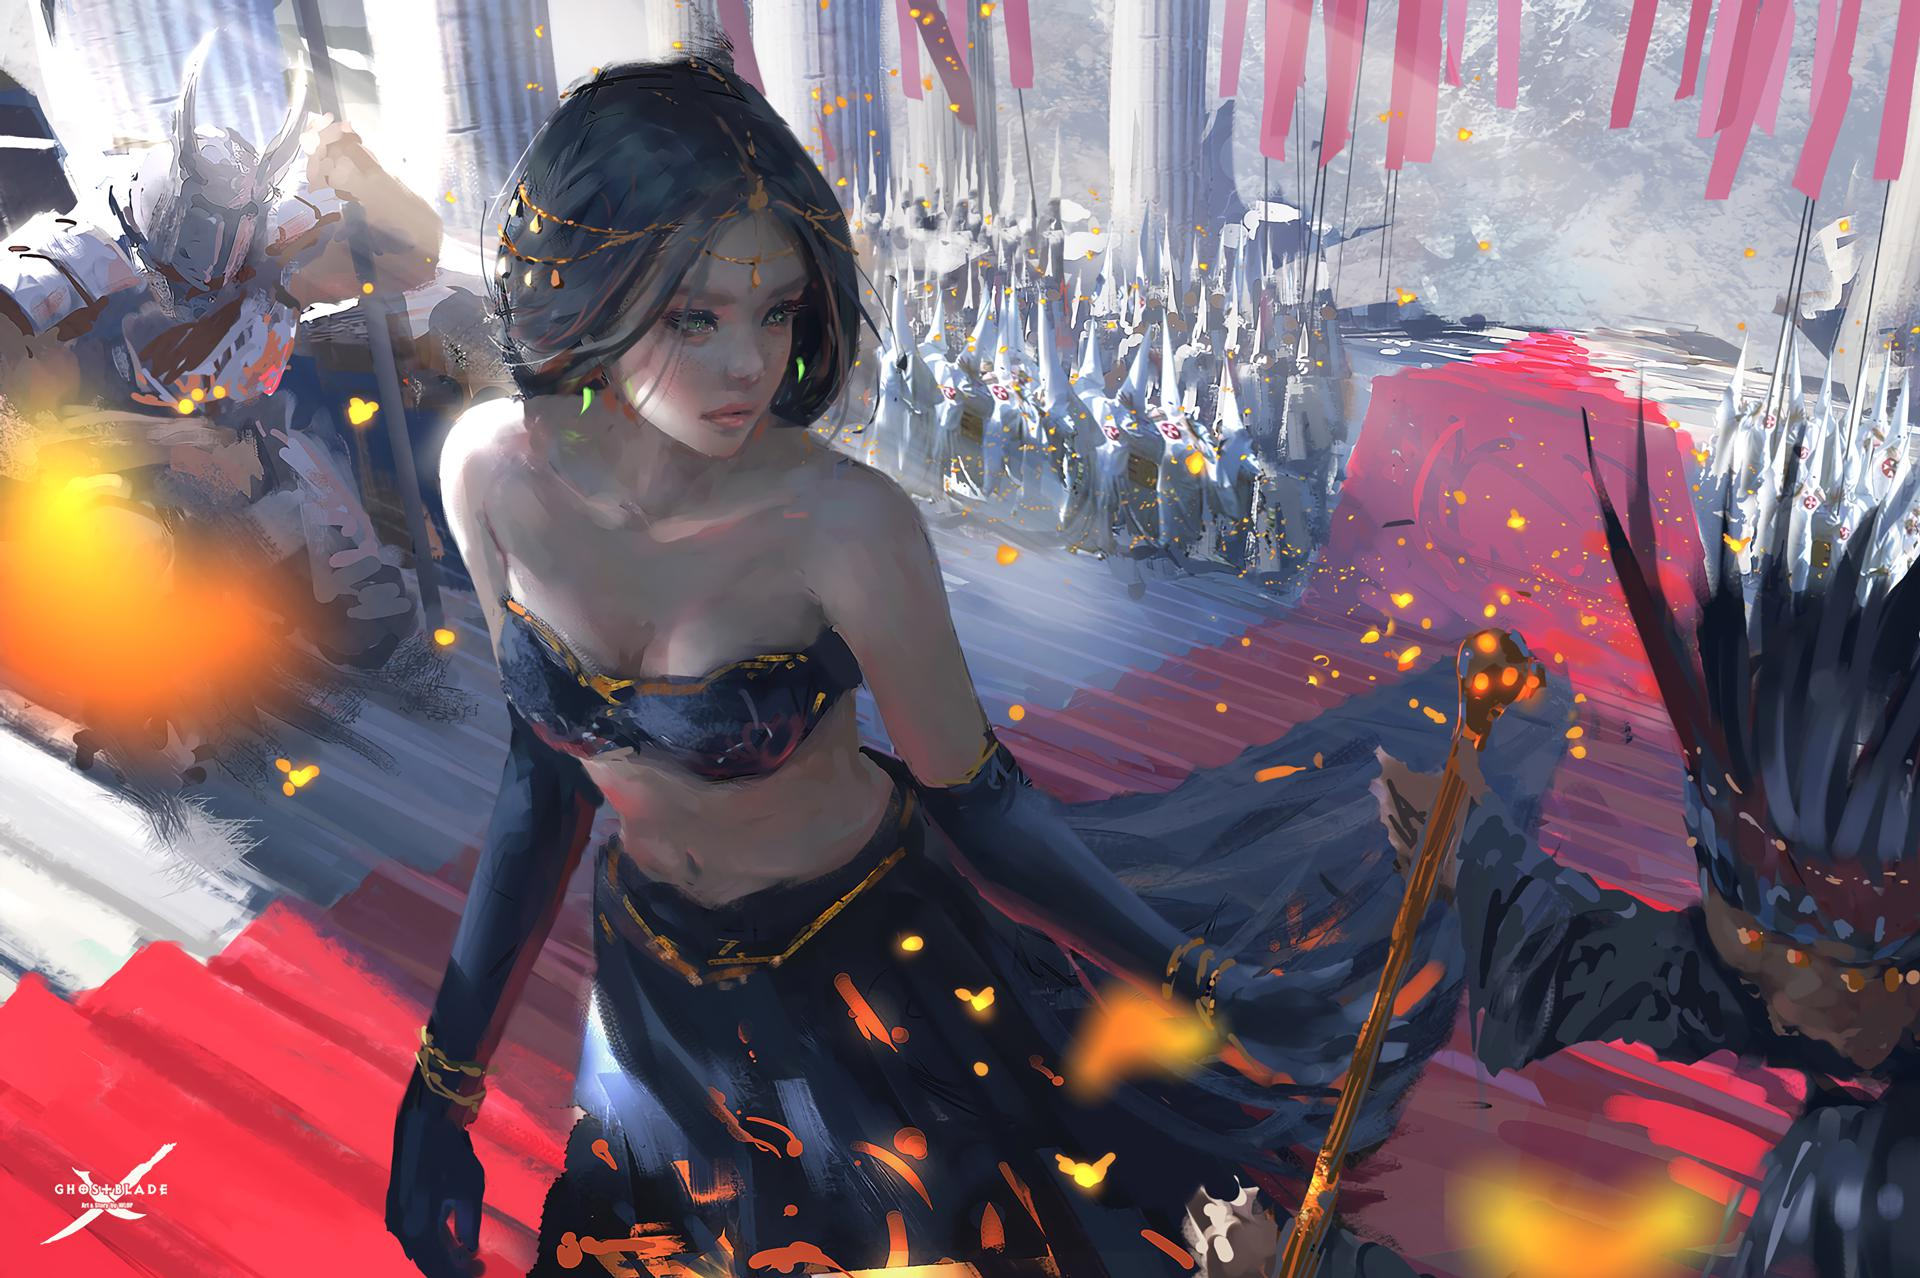 Bride Of Death By Wlop HD Fantasy Girls k Wallpapers Images